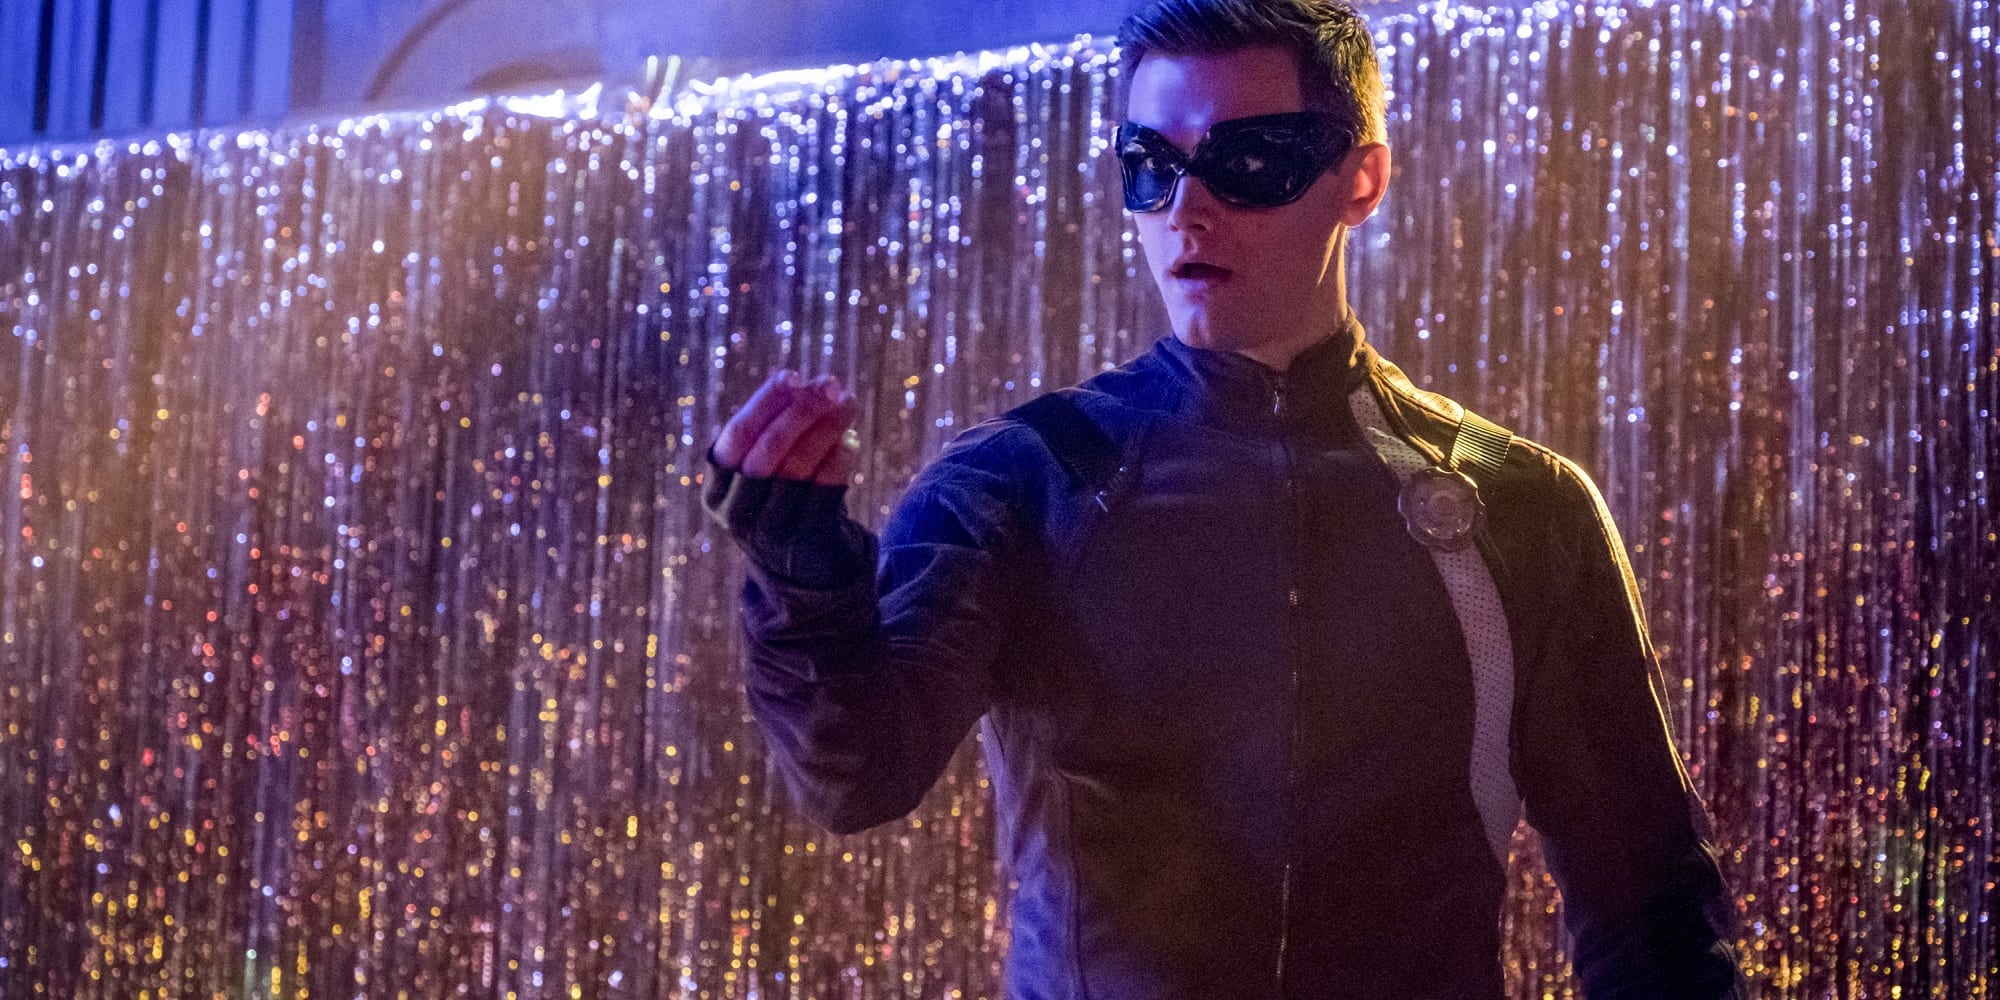 Hartley Sawyer fired the flash racist misogynistic tweets featured